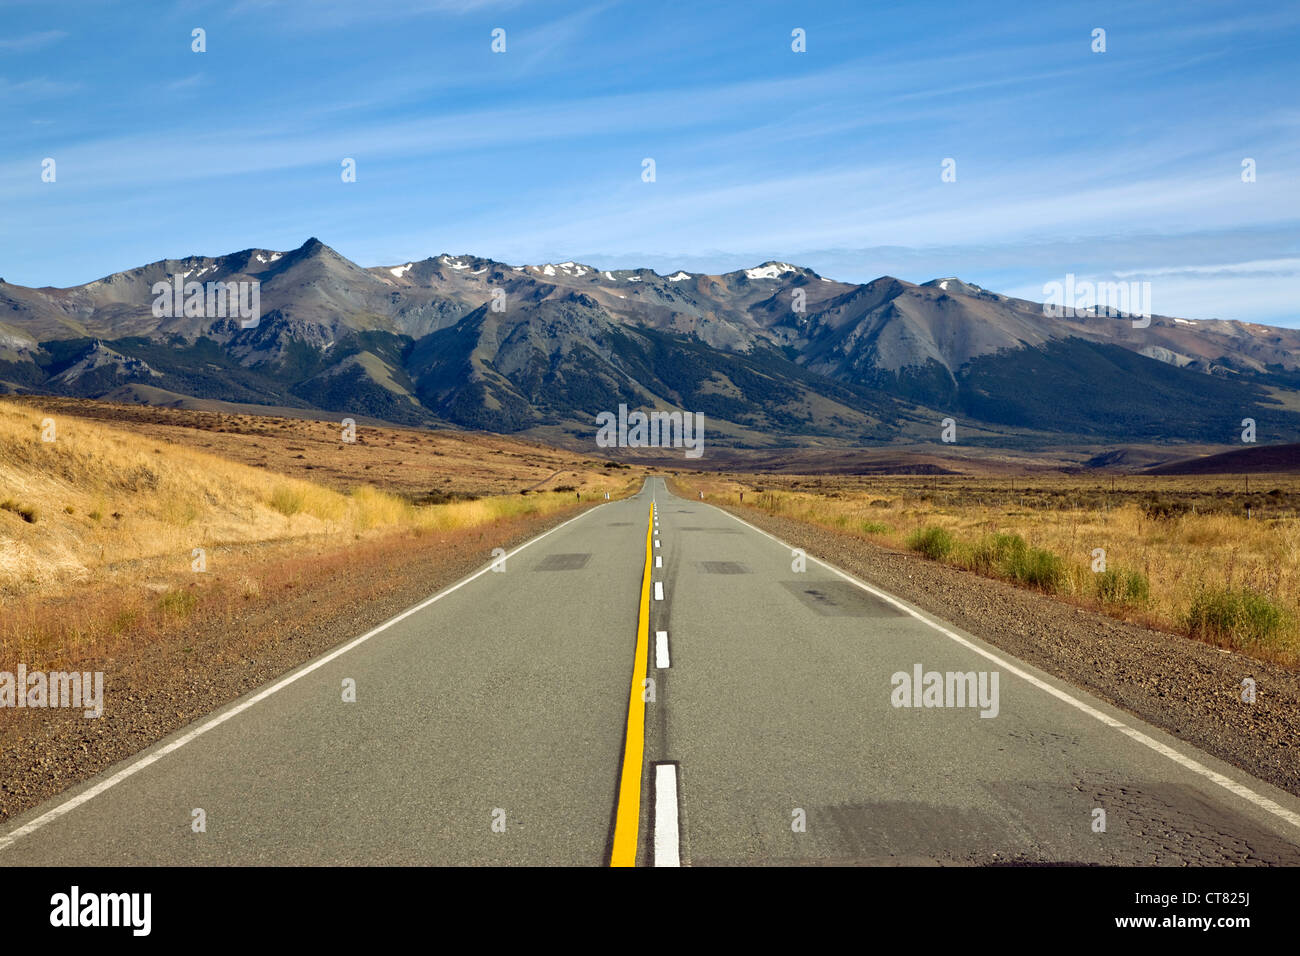 View along Ruta 40 - Stock Image